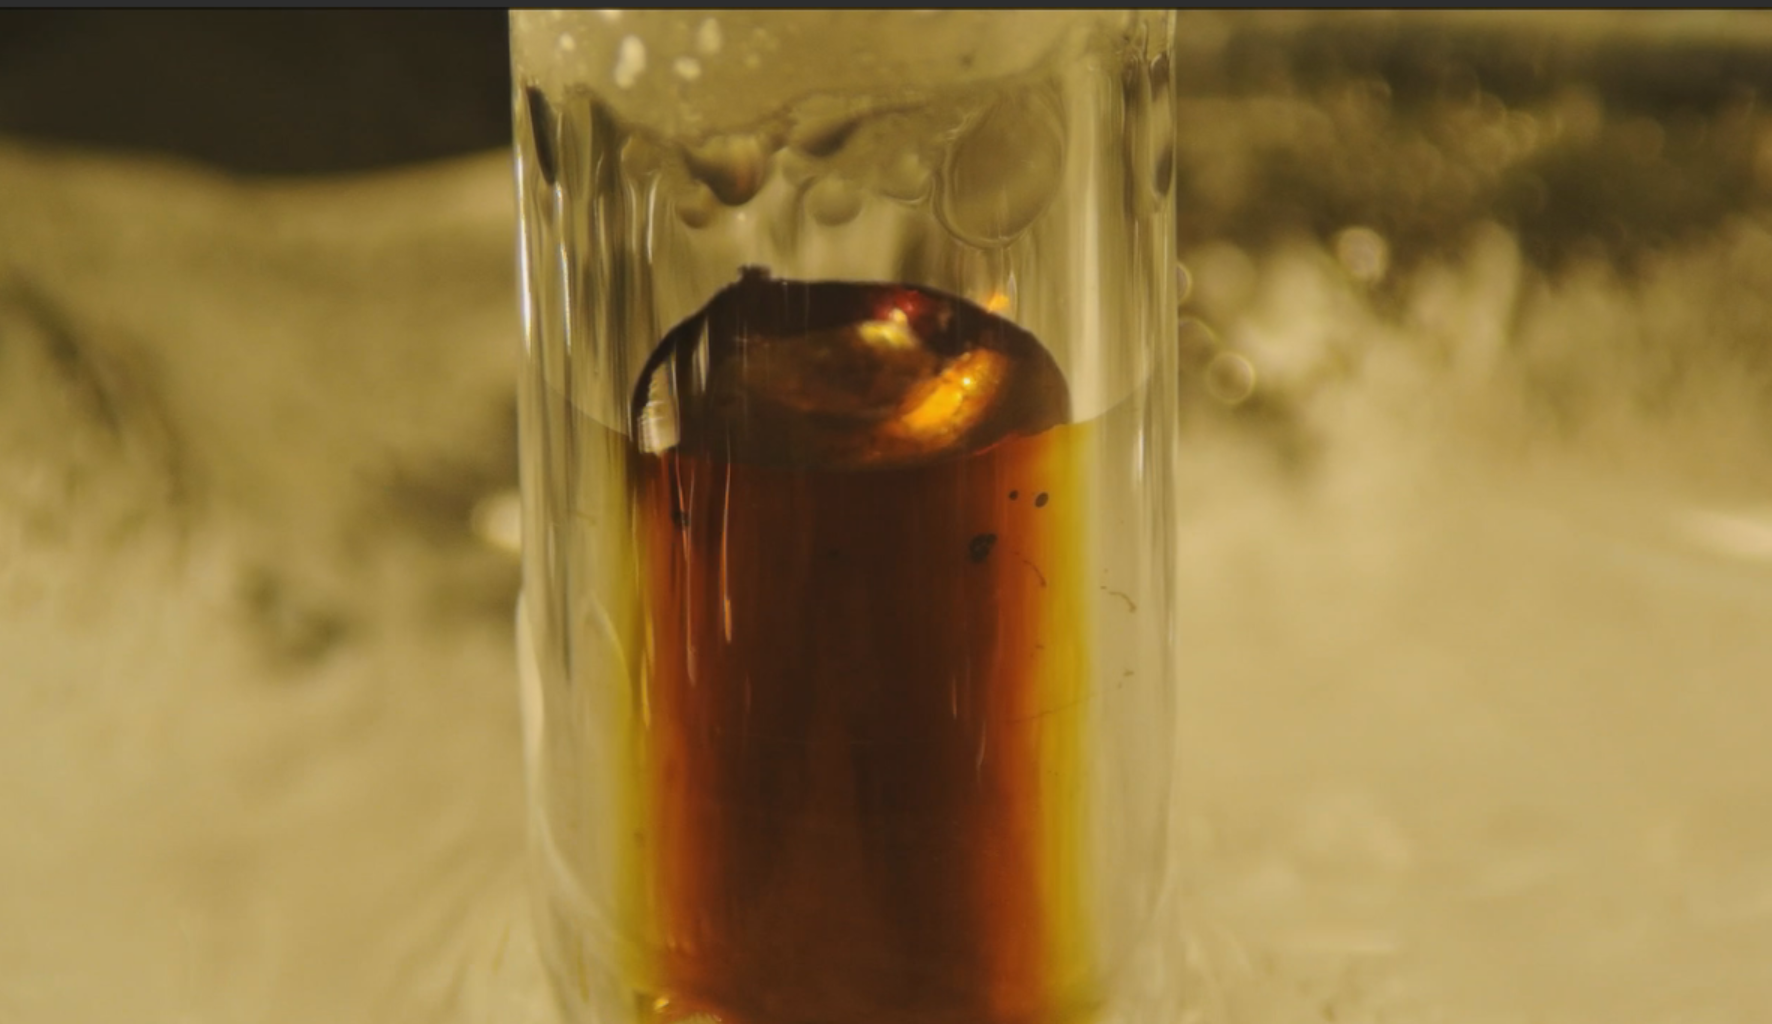 Gold colored metallic solution with higher concentration of excess electrons